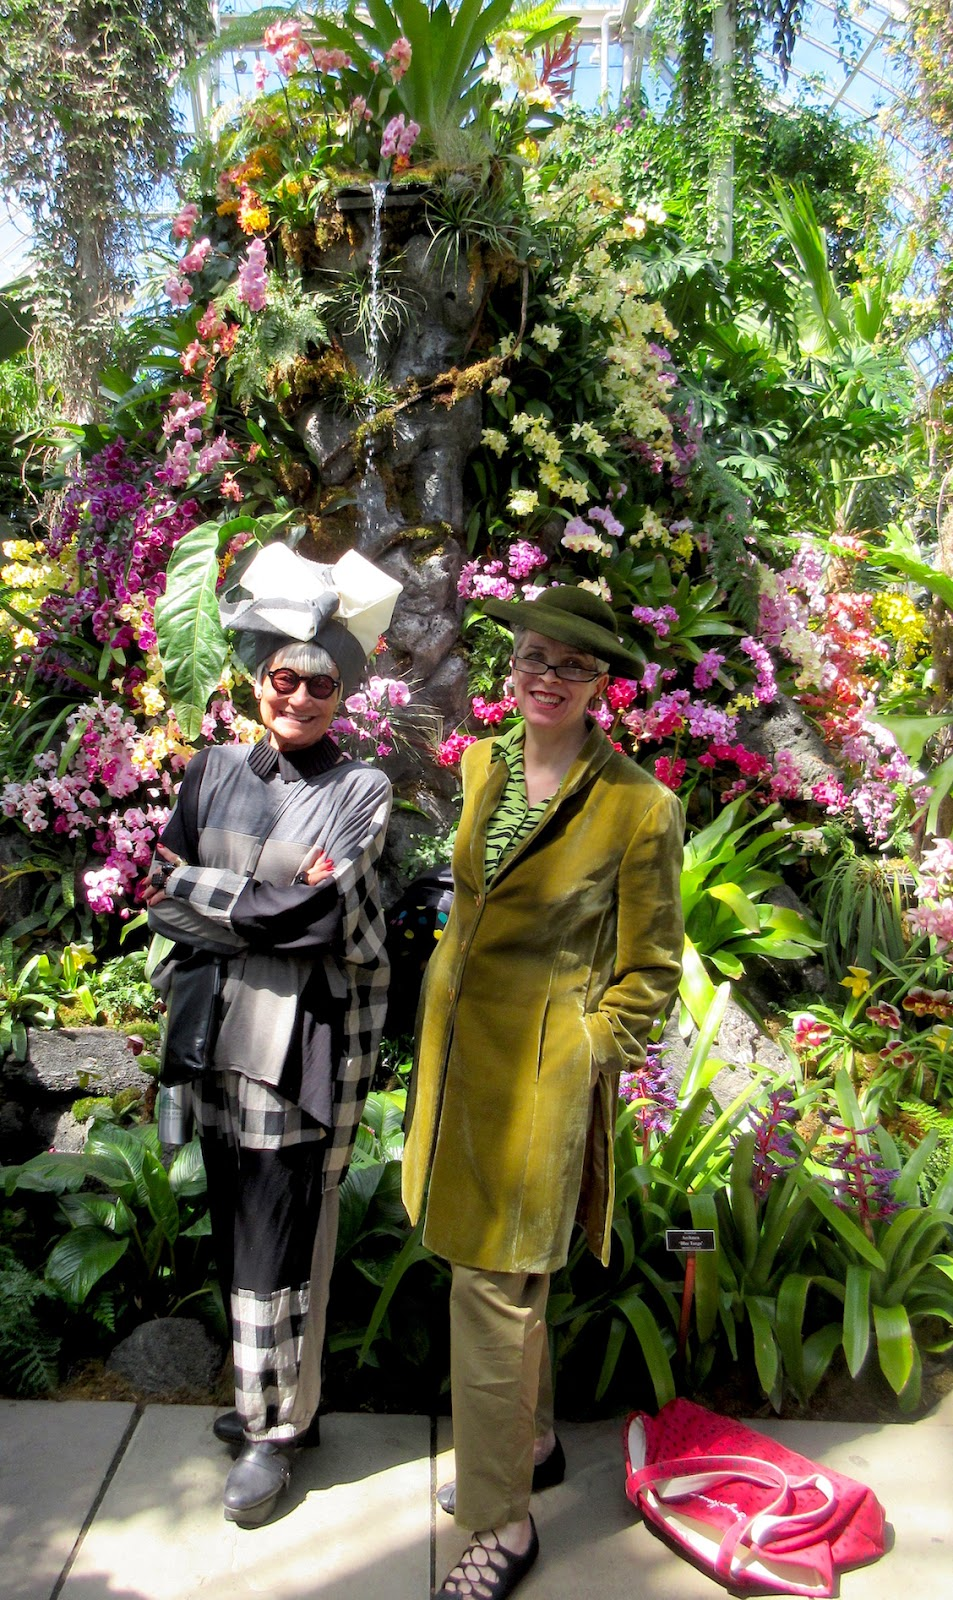 A Visit To The Orchid Show At The New York Botanical Garden